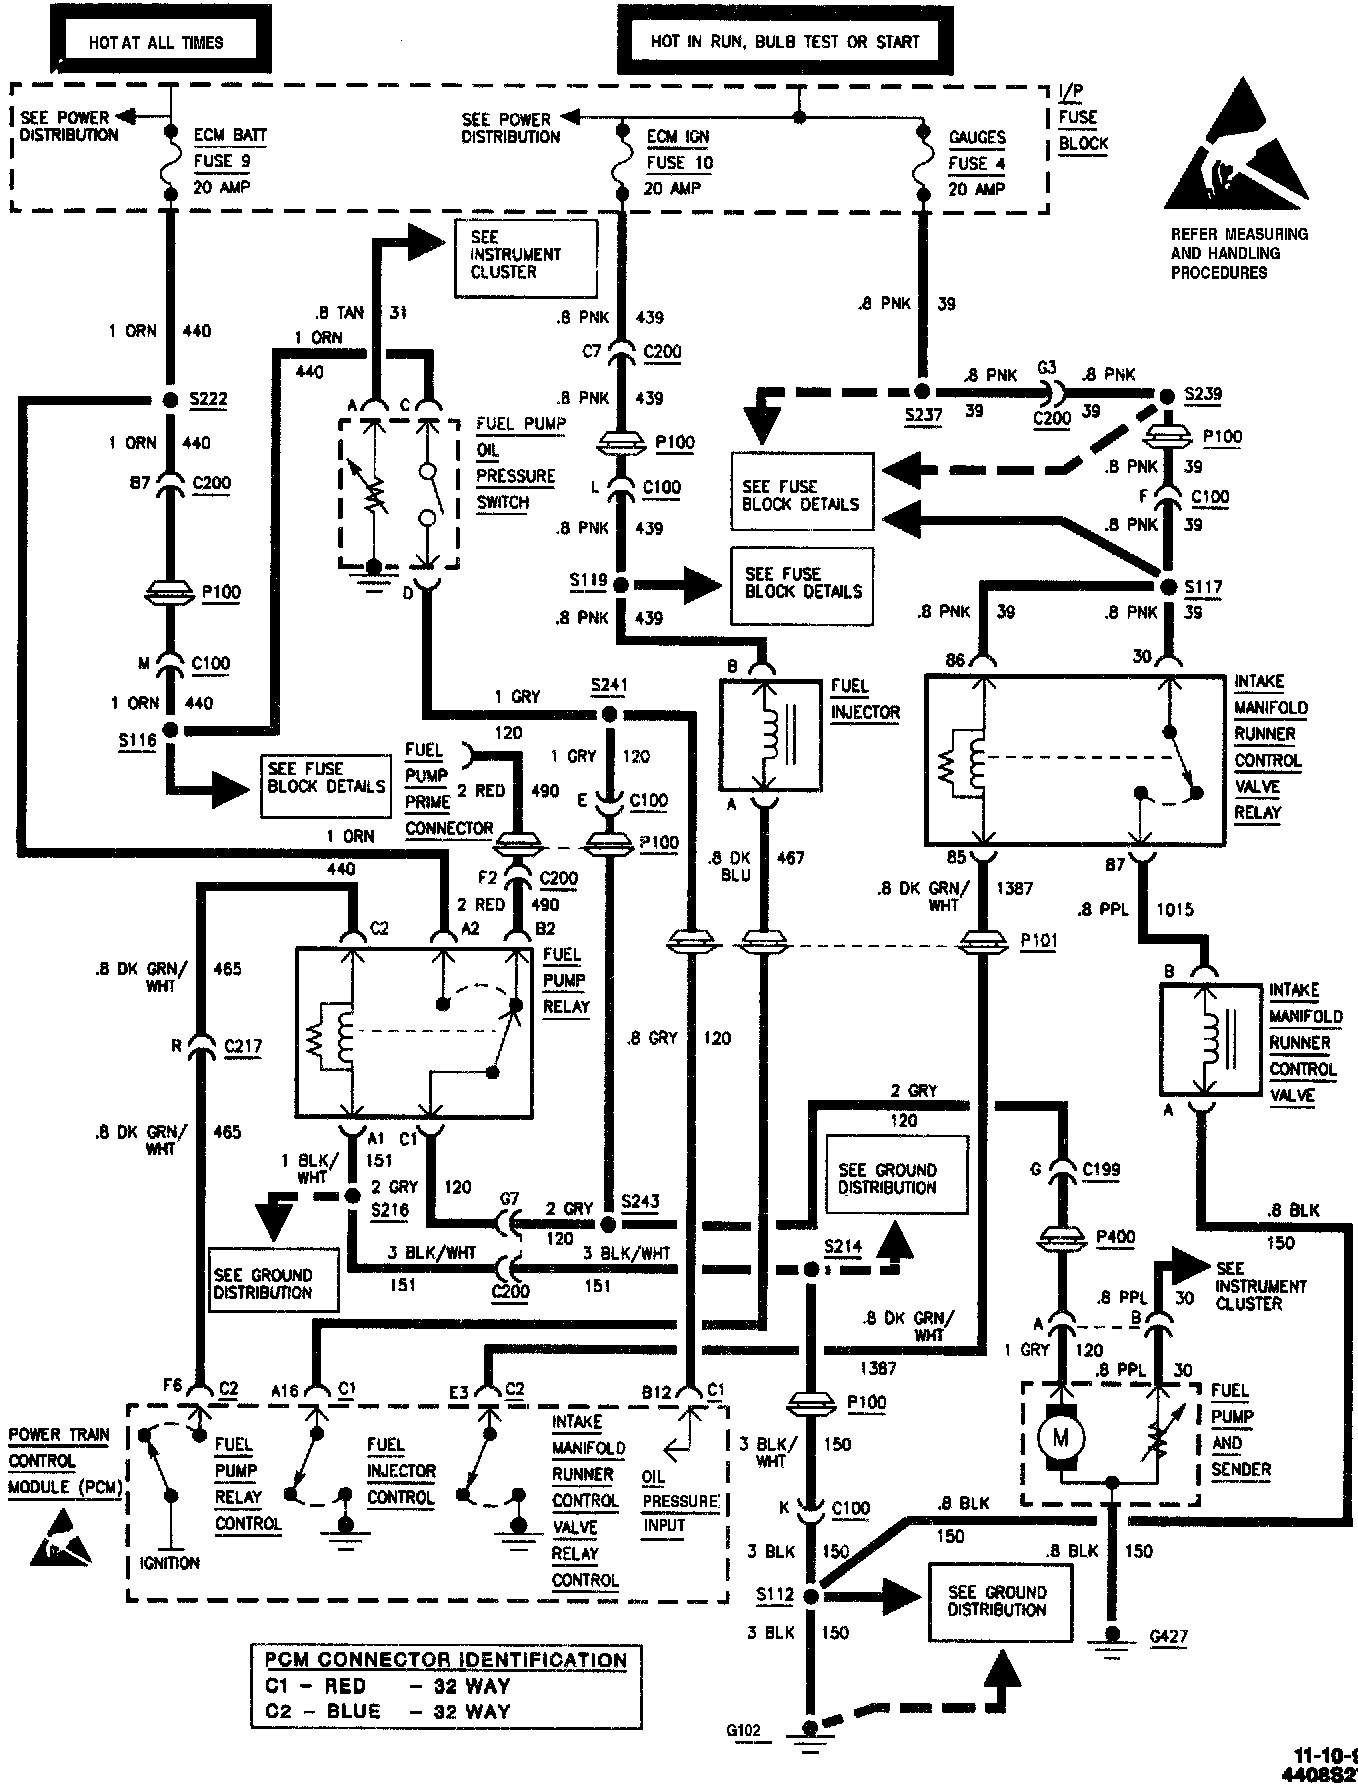 1989 Chevy S10 Tail Light Wiring Diagram   Wiring Diagram on basic trailer light wiring, rear tailight wiring, 94 gmc 2500 rear light wiring,